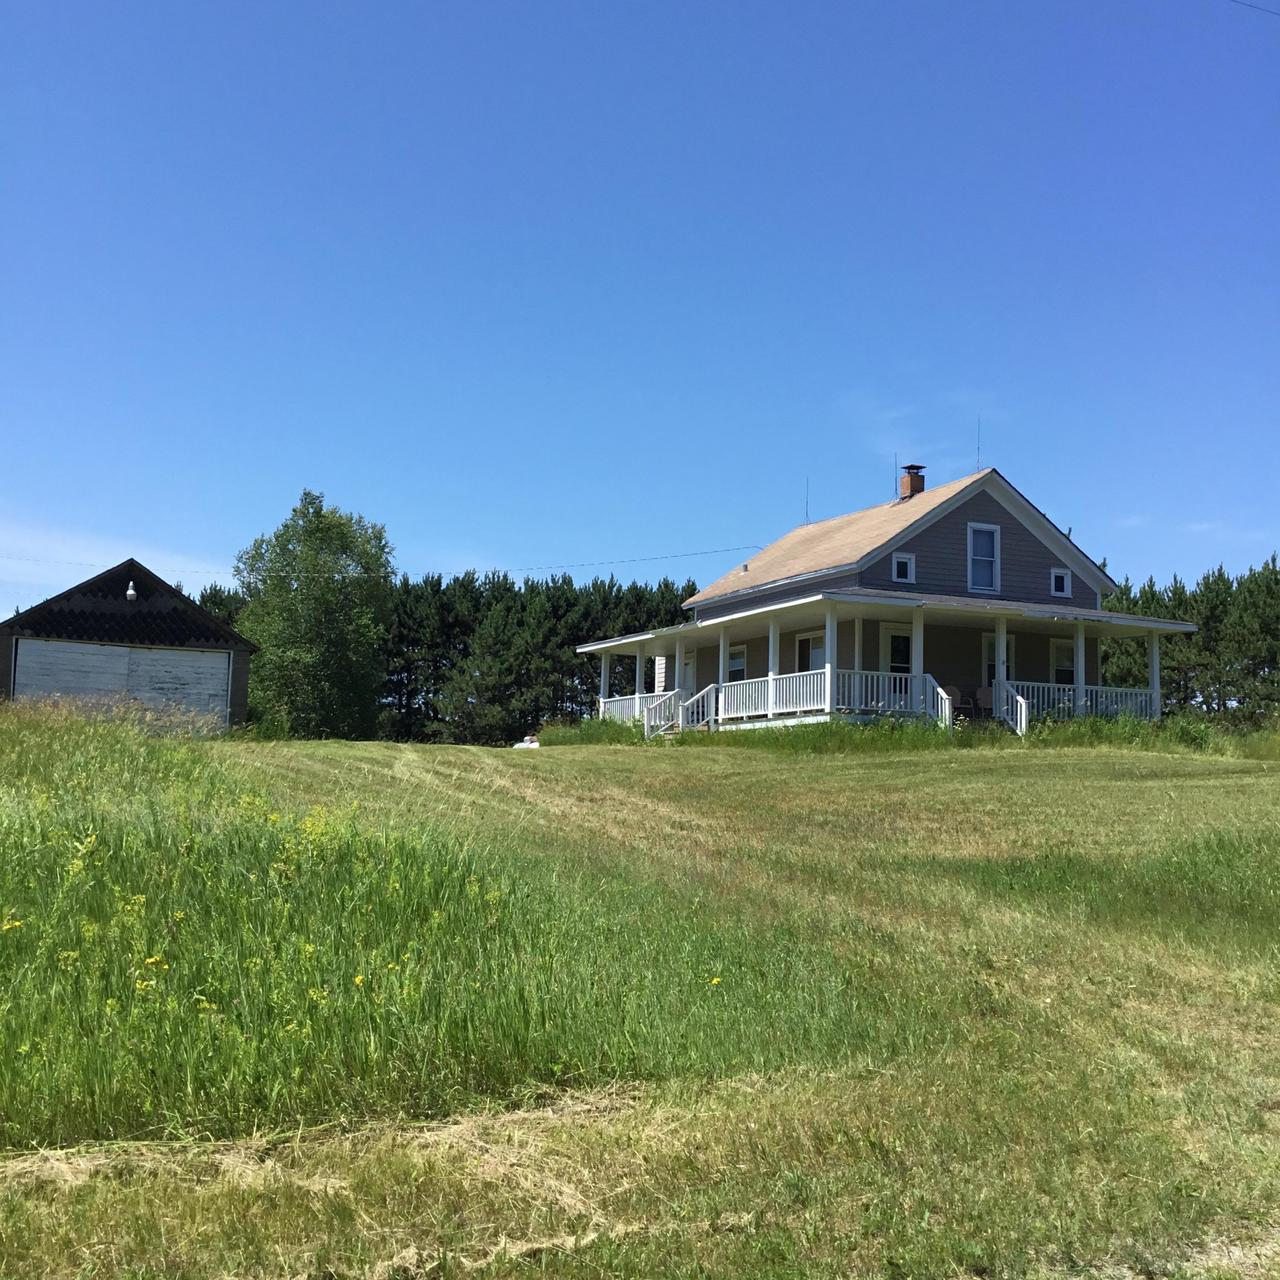 Just Reduced- New Septic 08/06/2019Sit back and enjoy the country scenery and smell the country air as you relax on the 6 x 54 wrap around porch with  updates done in the 90's to this  farmhouse. So many happy memories where made in this home that date back to the 1920's when it was once farmed. Nicely border with mature trees and flowered fields . Home has farm style eat in kitchen with updated cabinets, newer floors that carries into the dining room. Arch door way ,wood doors & trim. There's a bedroom/den on the main floor along with washer and dryer, living room, full bath (porcelain) tub and plenty of storage with 3 additional bedrooms upstairs. Poured basement with 8' ceilings , two car garage. LP tank is owned